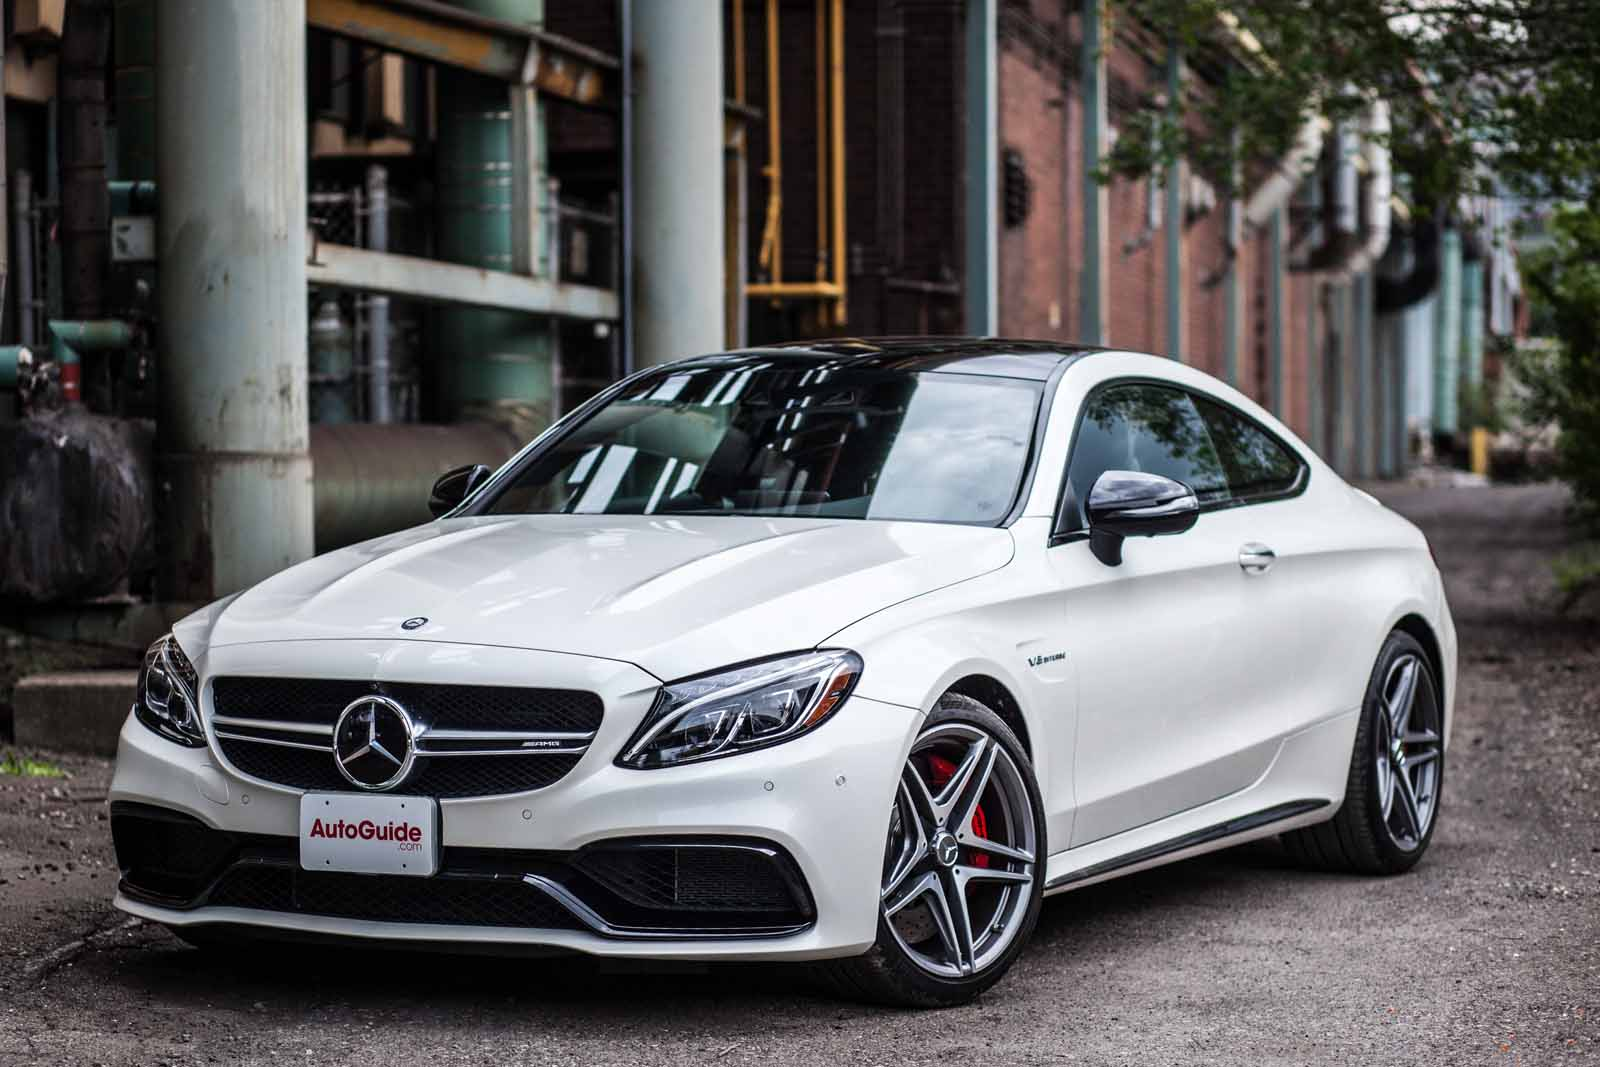 2017 mercedes amg c63 s coupe review news